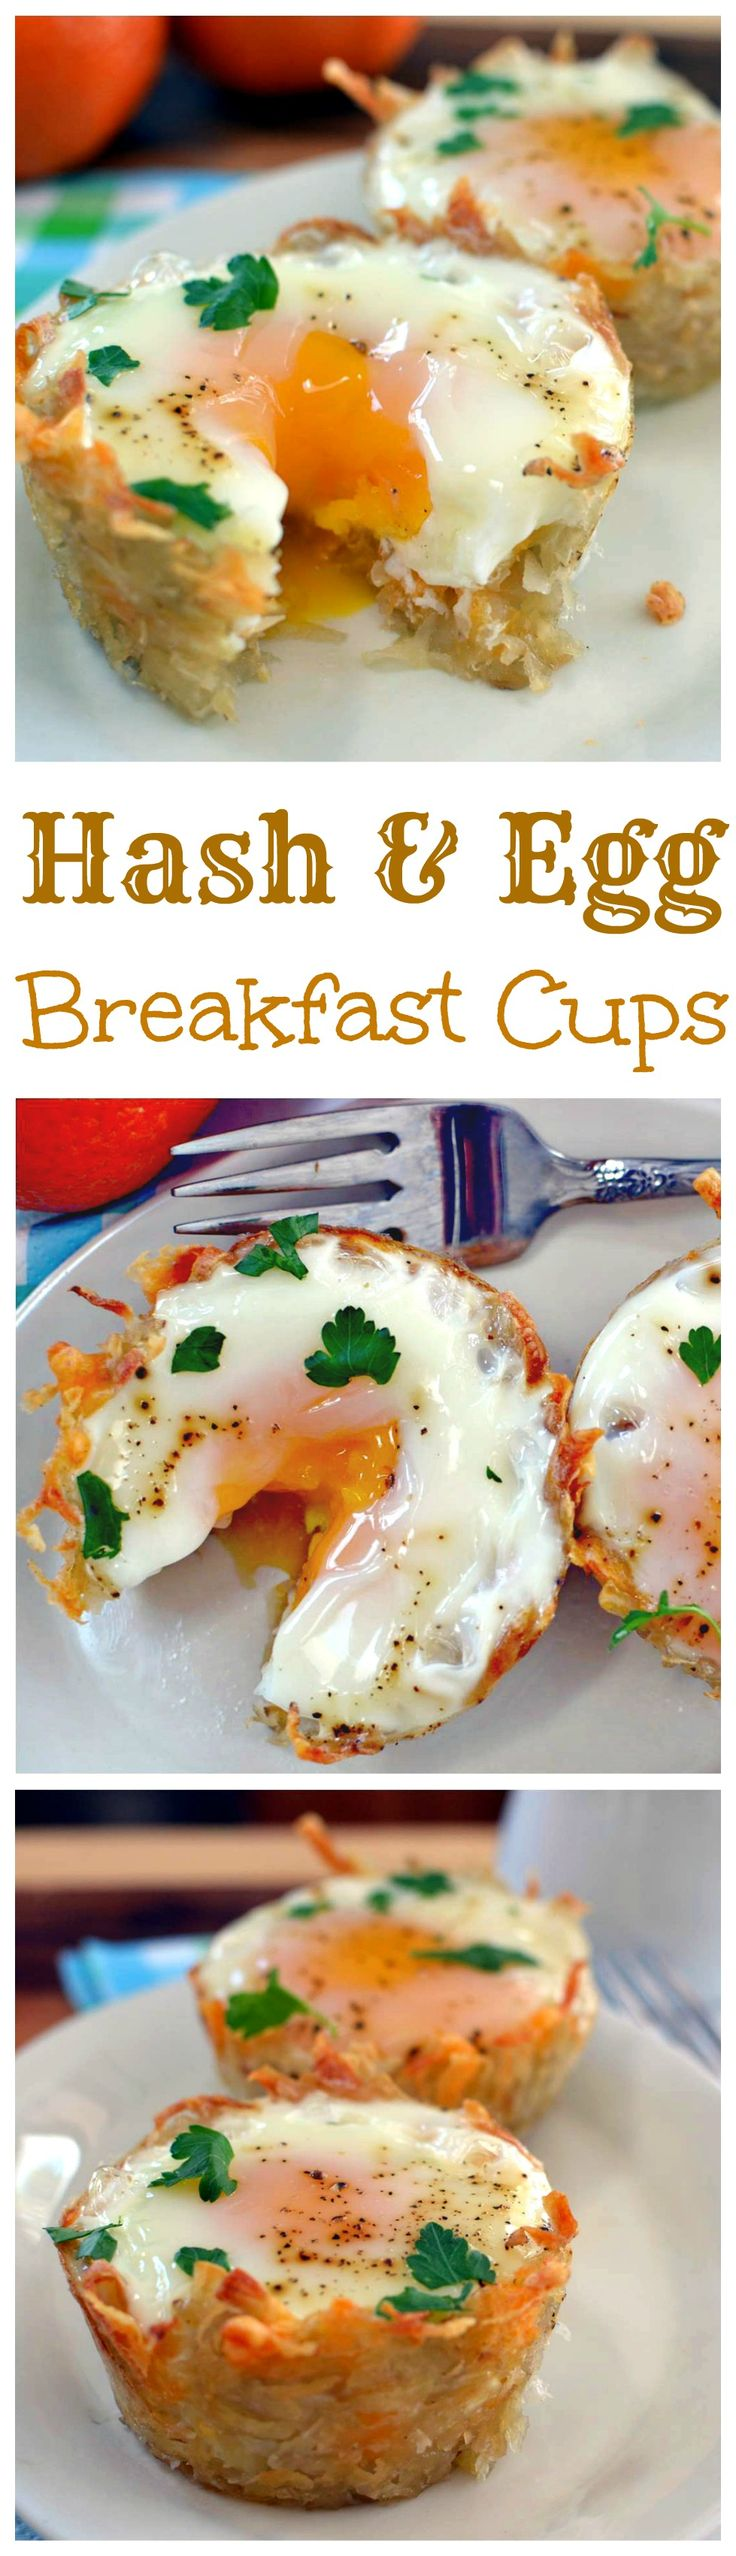 A cup of extra crispy hash cups with a perfectly cooked egg inside- easy to make and only 2 ingredients necessary. A perfect way to enjoy brunch!